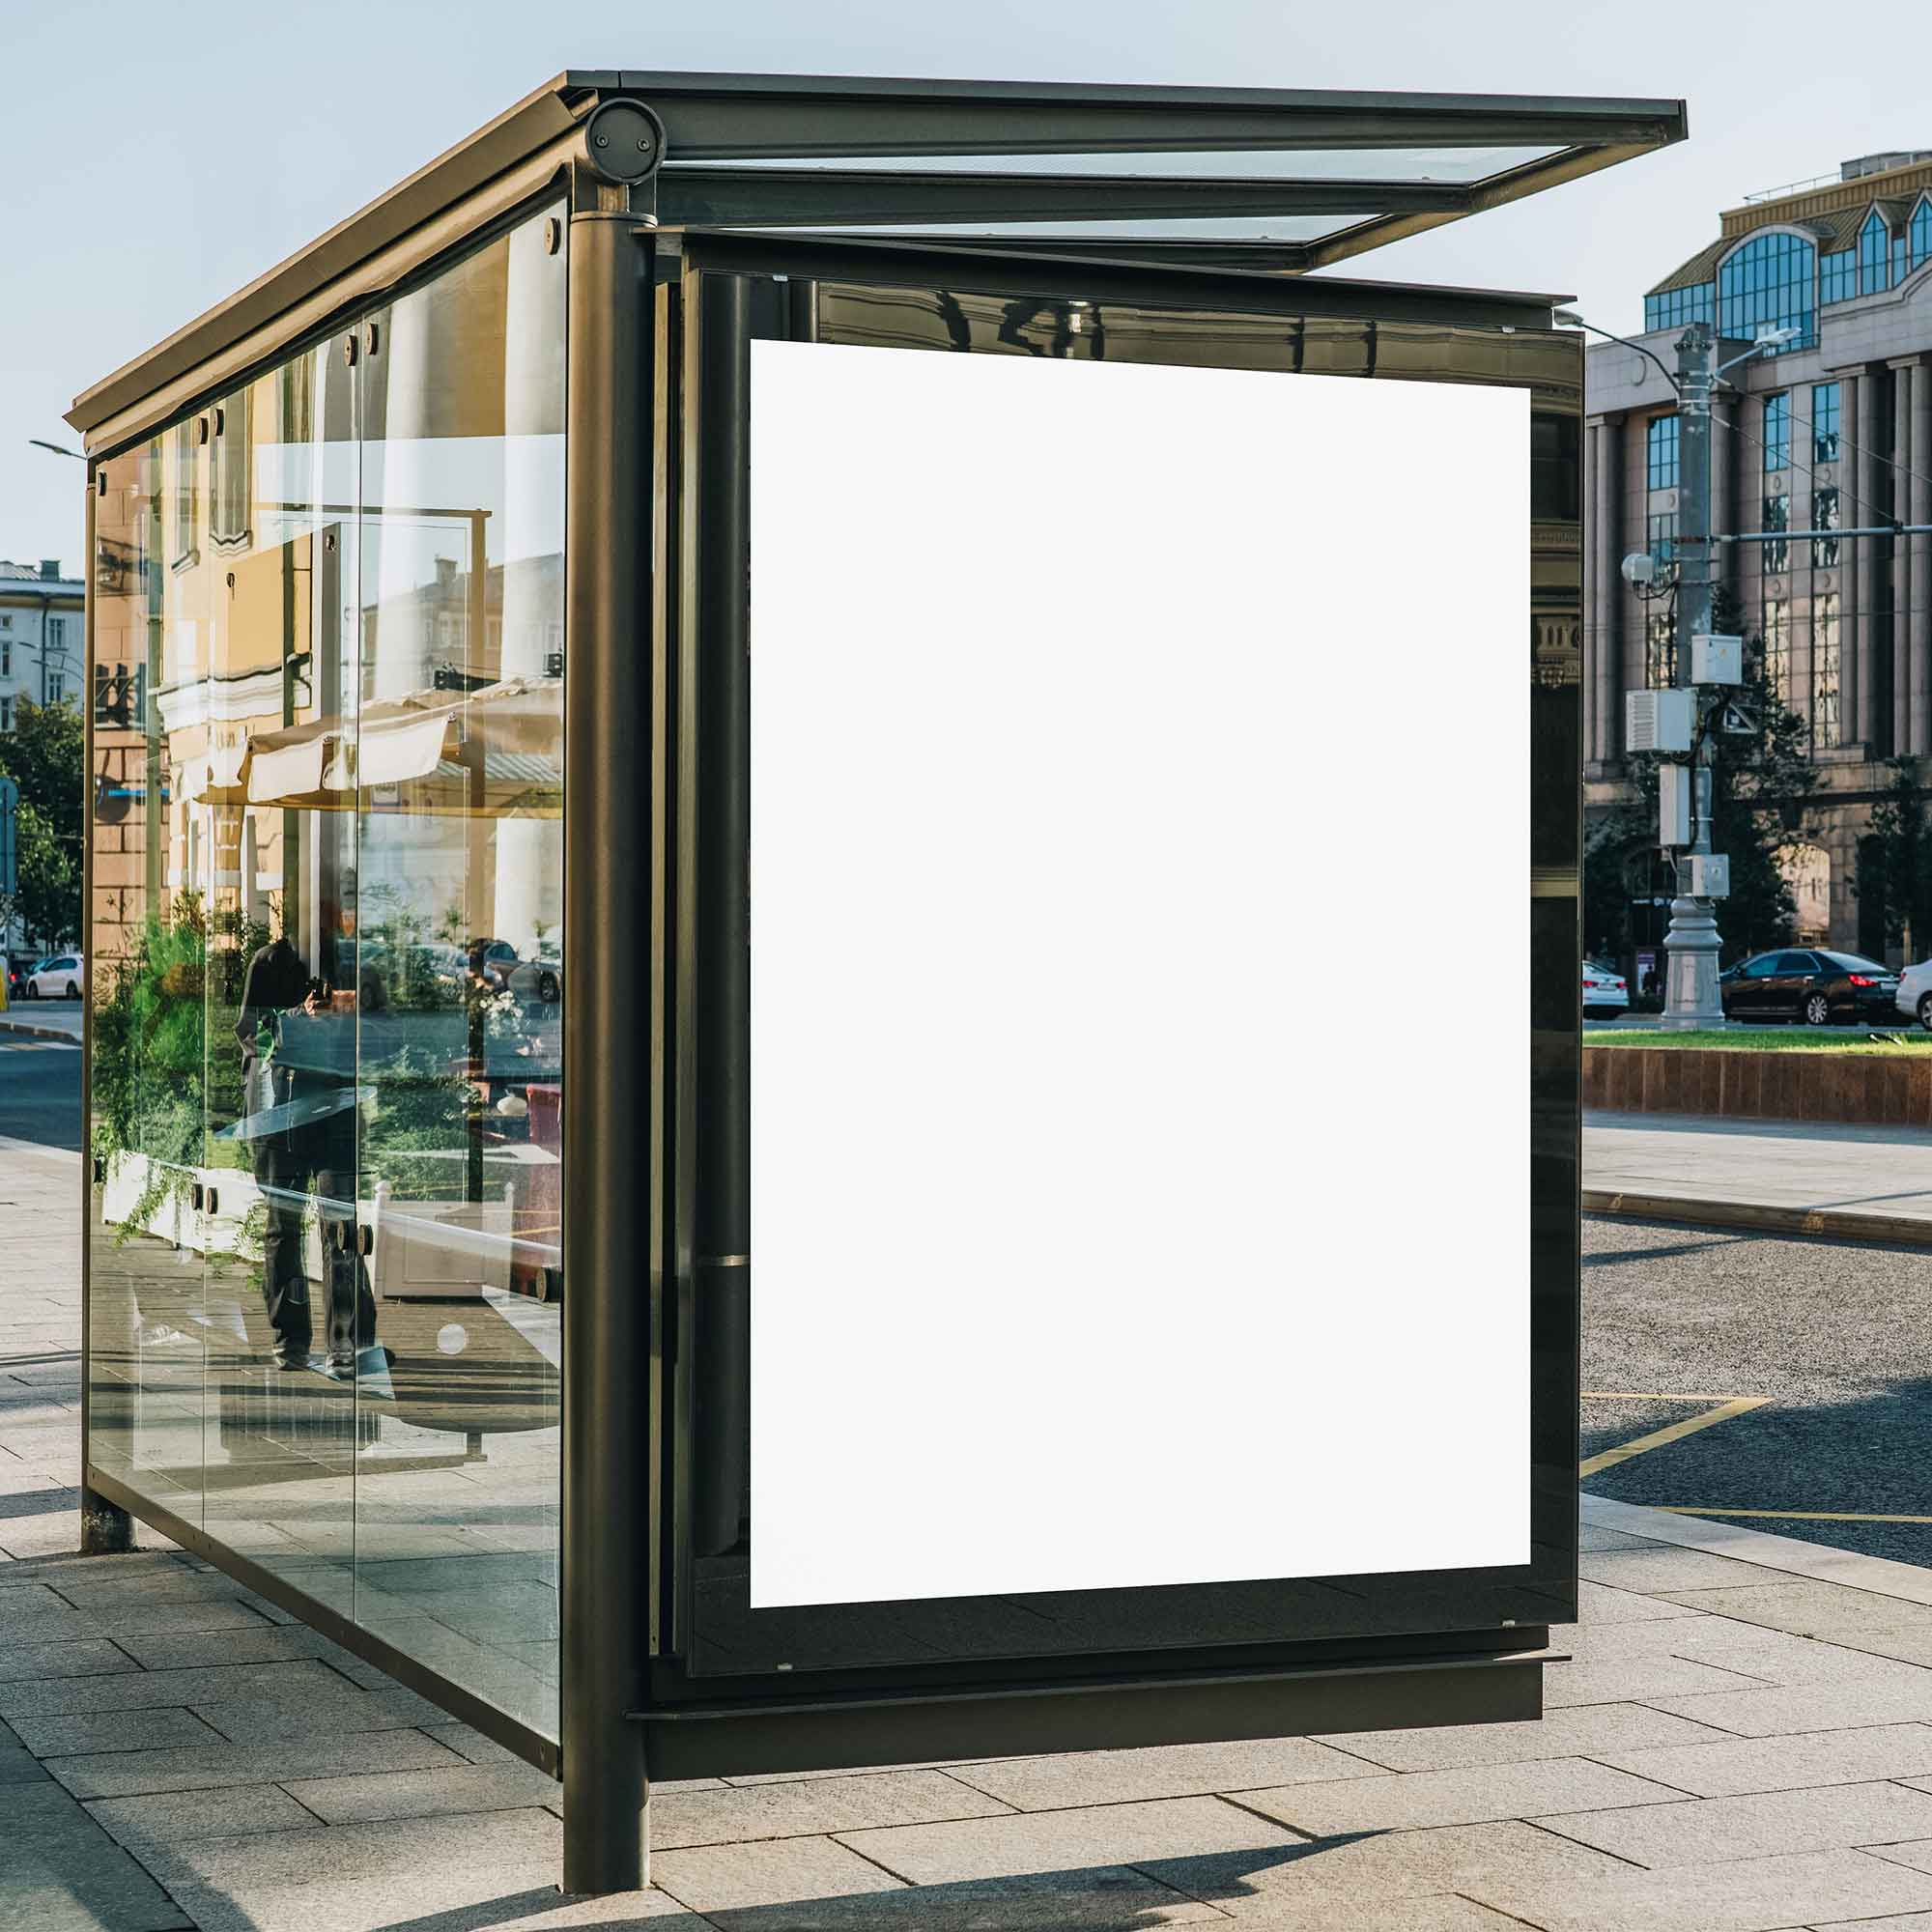 Outdoor Bus Shelter Advertisement Mockup 2